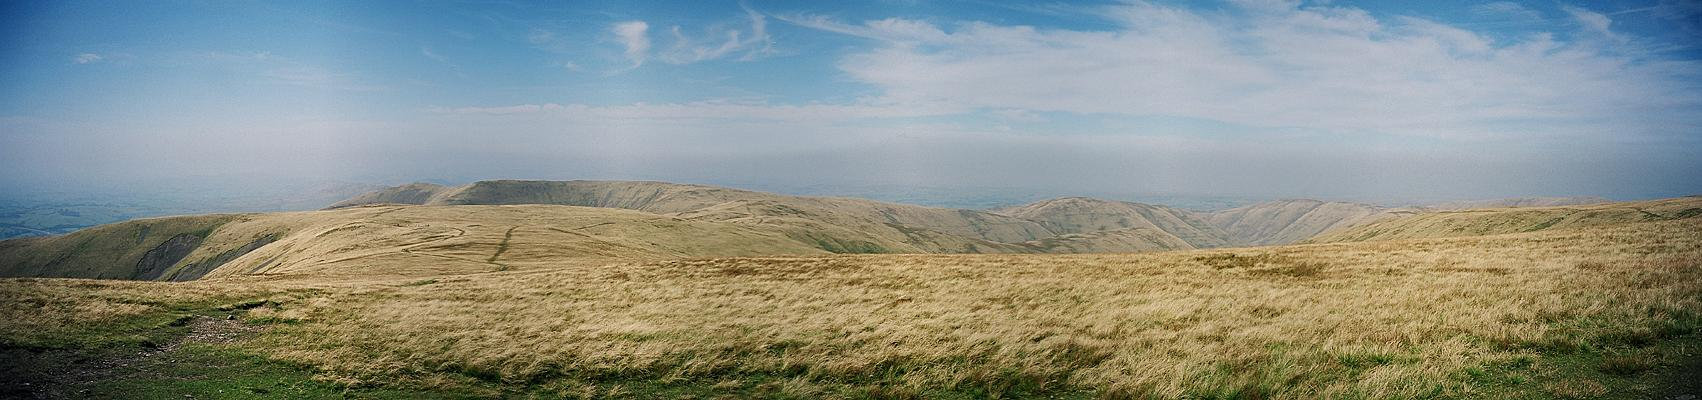 The Calf (Howgills) - Northern Panorama